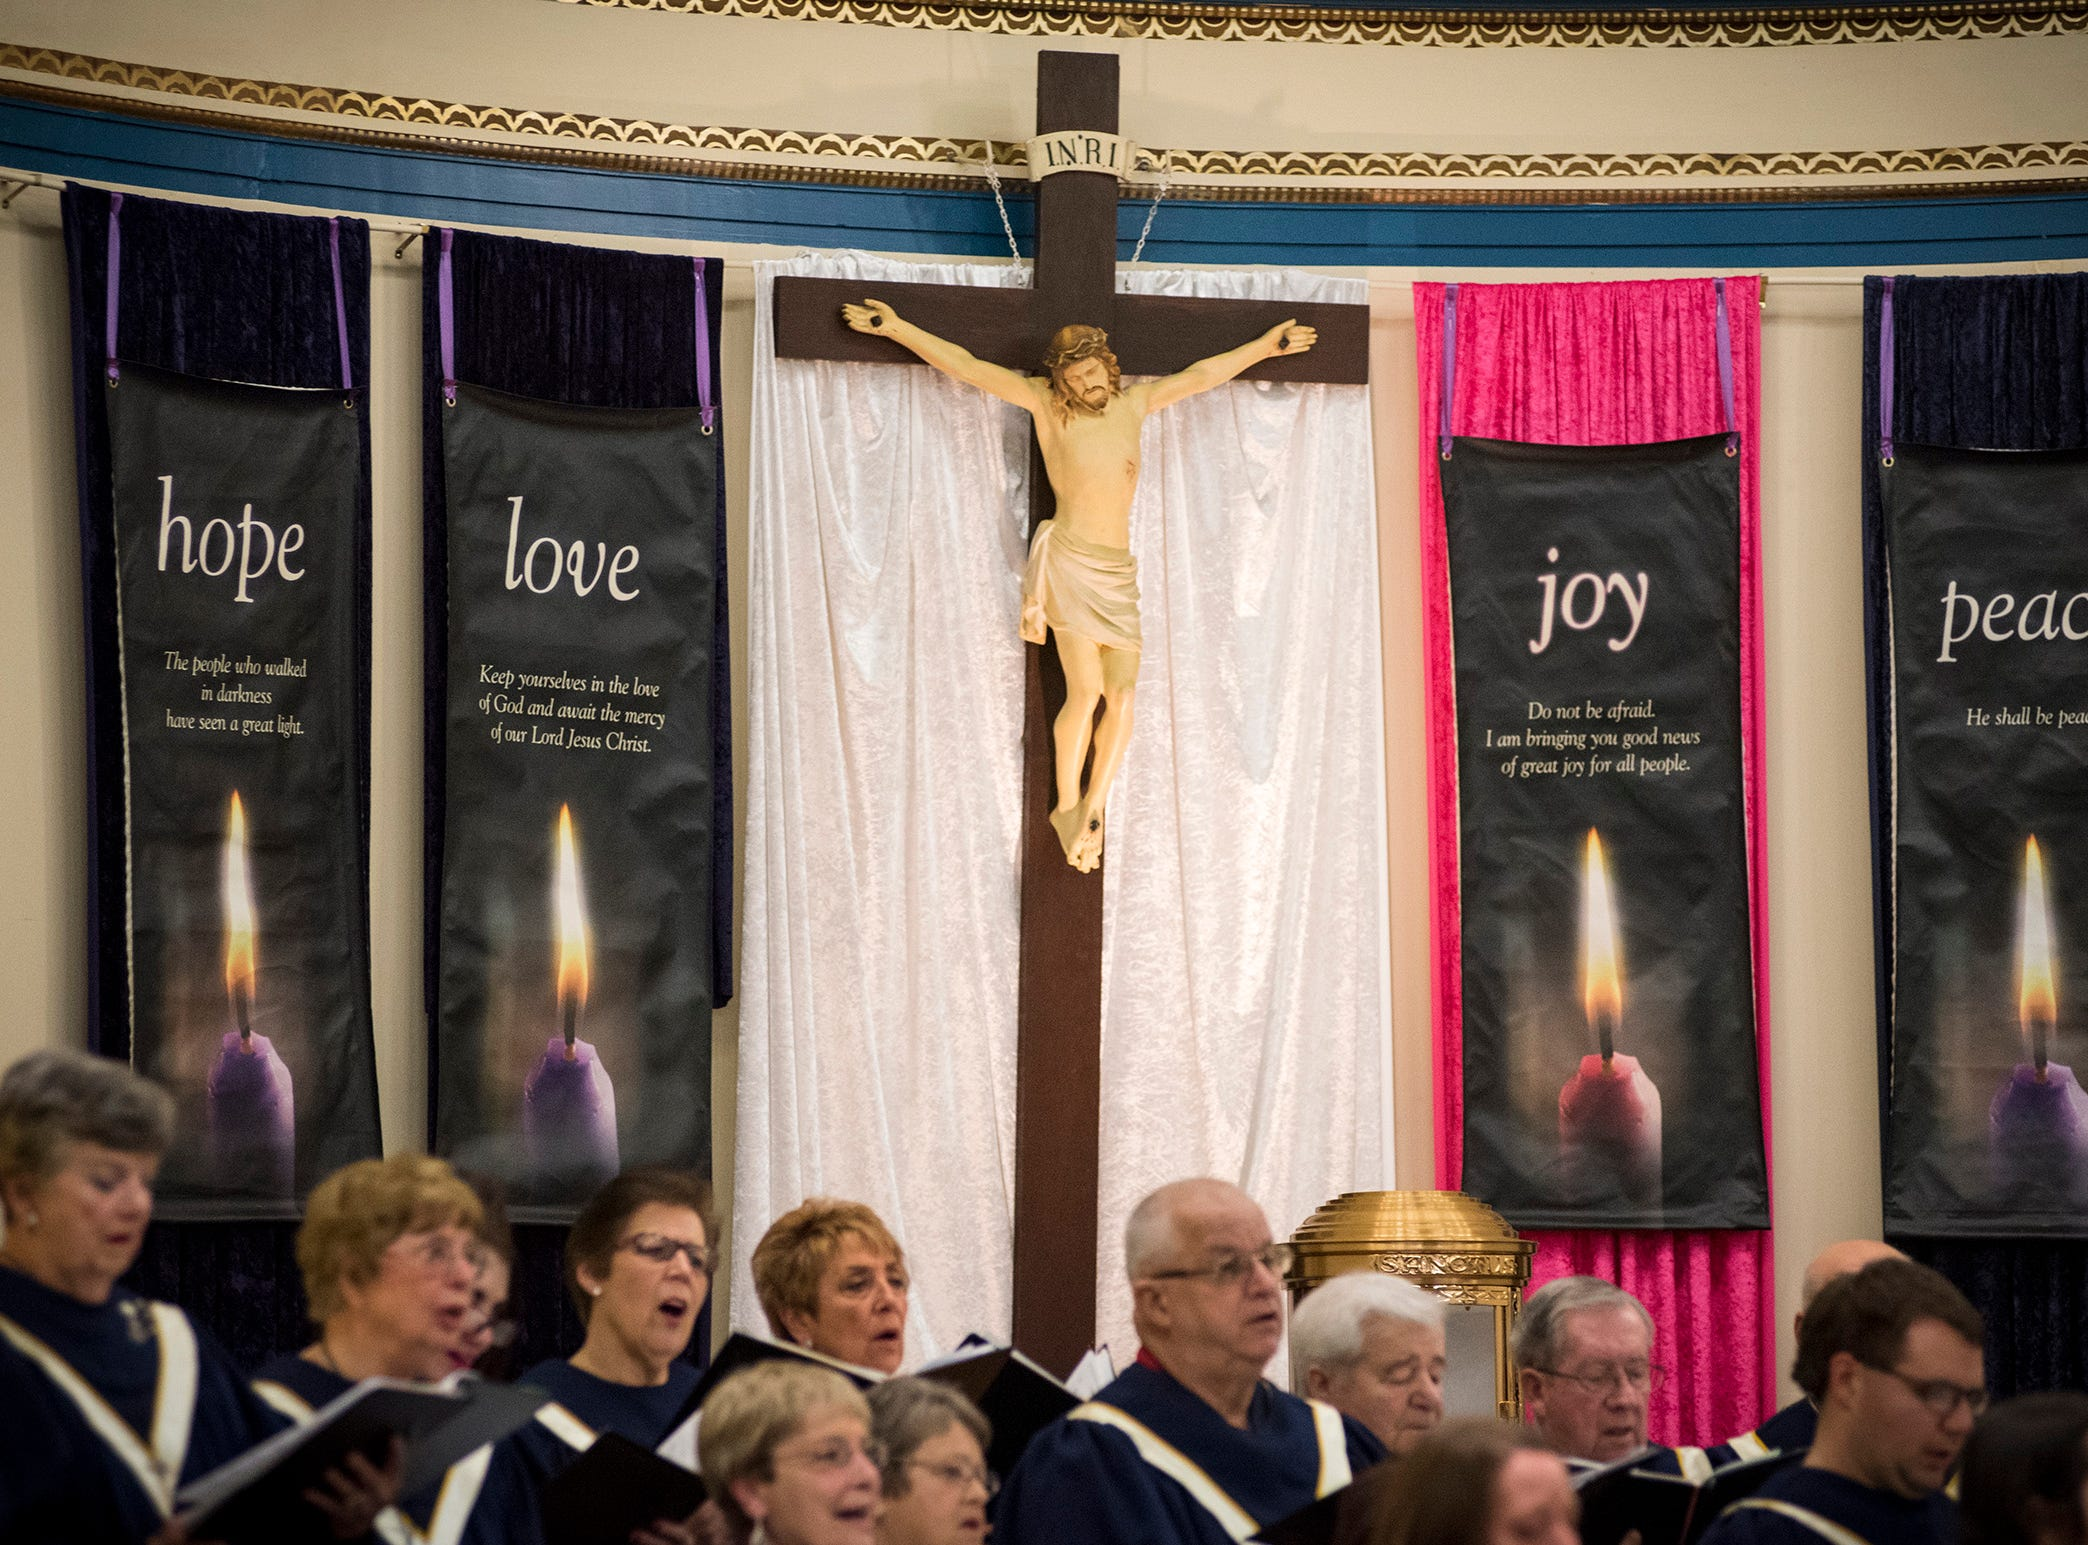 Banners hang alongside a crucifix in the sanctuary of St. Joseph Catholic Church Friday, Dec. 7, 2018 during the annual Advent concert.